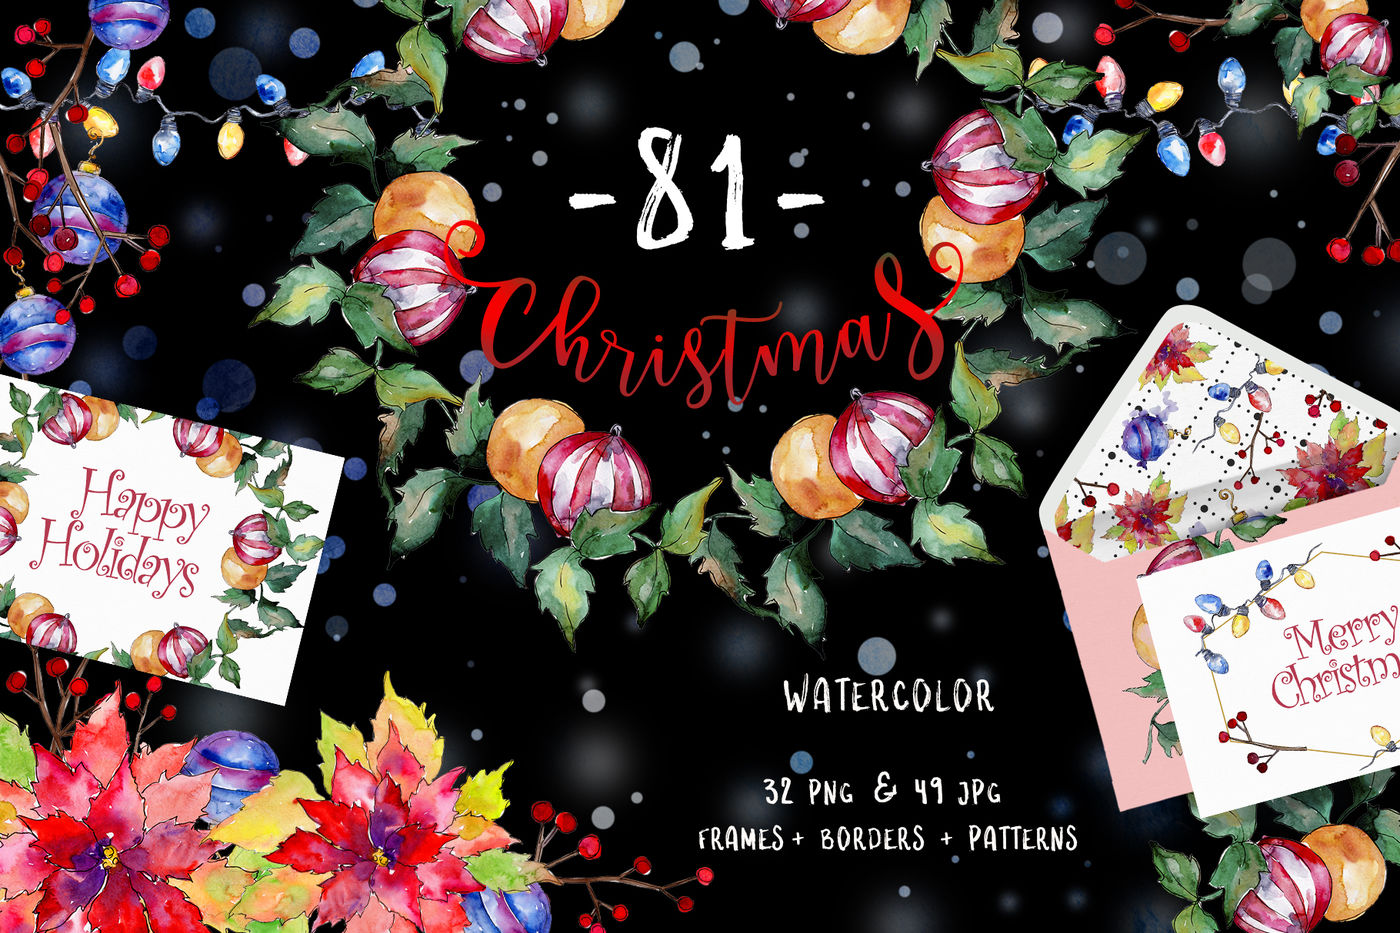 Christmas Happy Holiday Png Watercolor Set By Mystocks